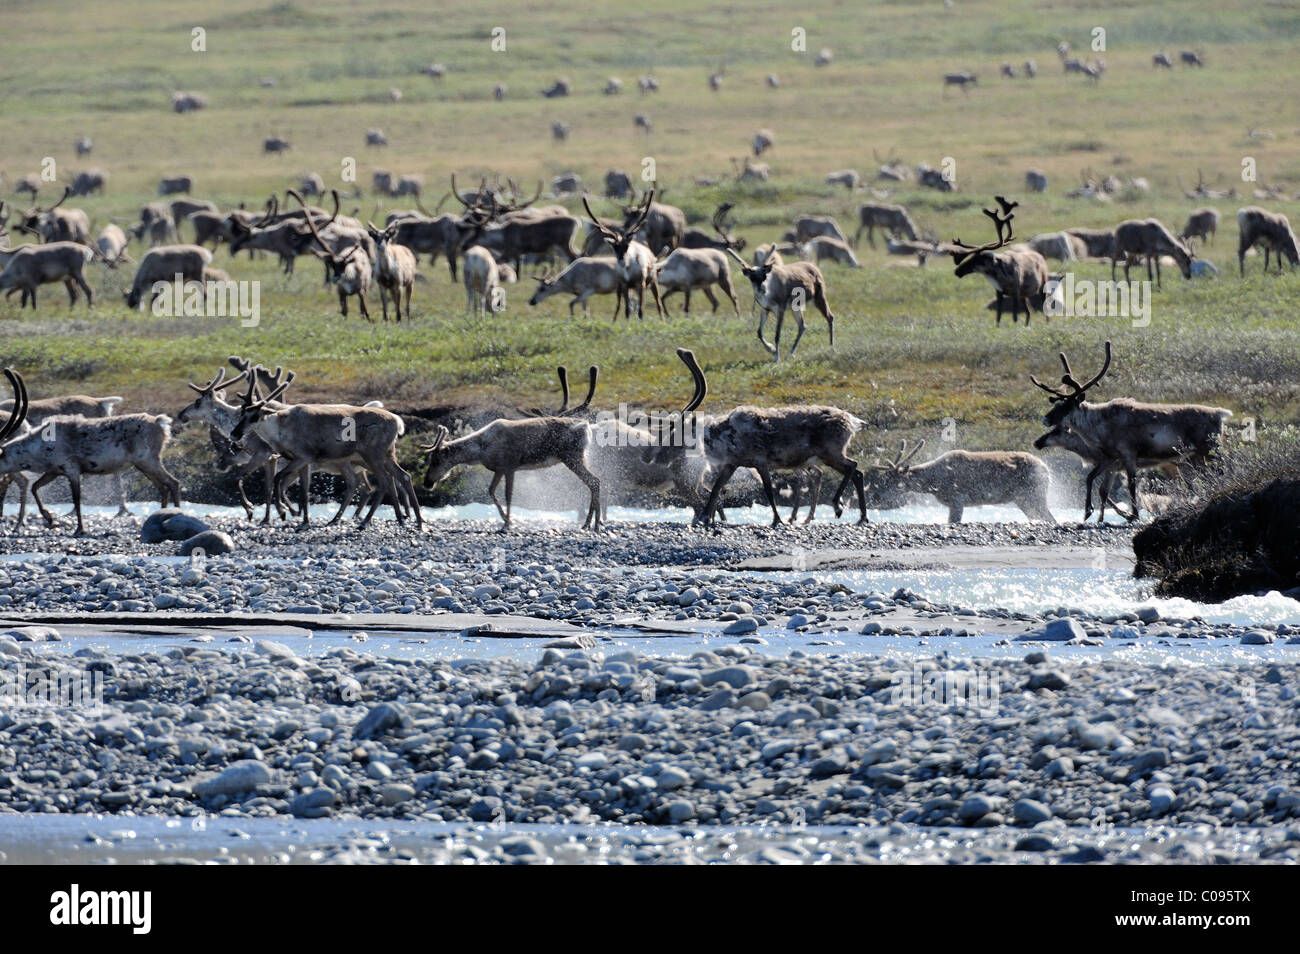 View of the Porcupine Caribou herd crossing the Hulahula River near Old Man Creek during their annual migration - Stock Image